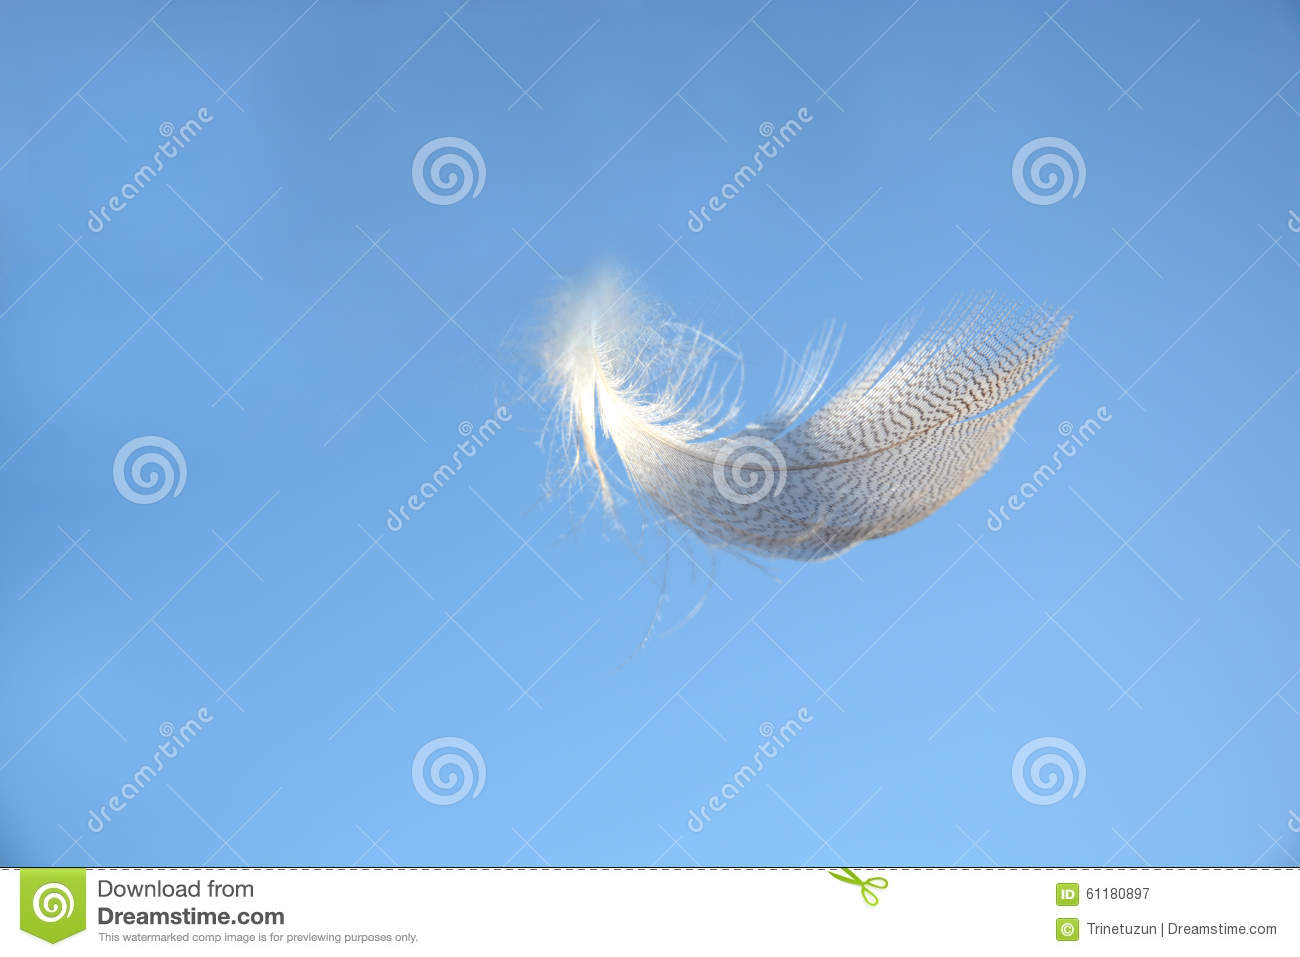 Fluffy Soft White Striped Bird Feather Floating In The